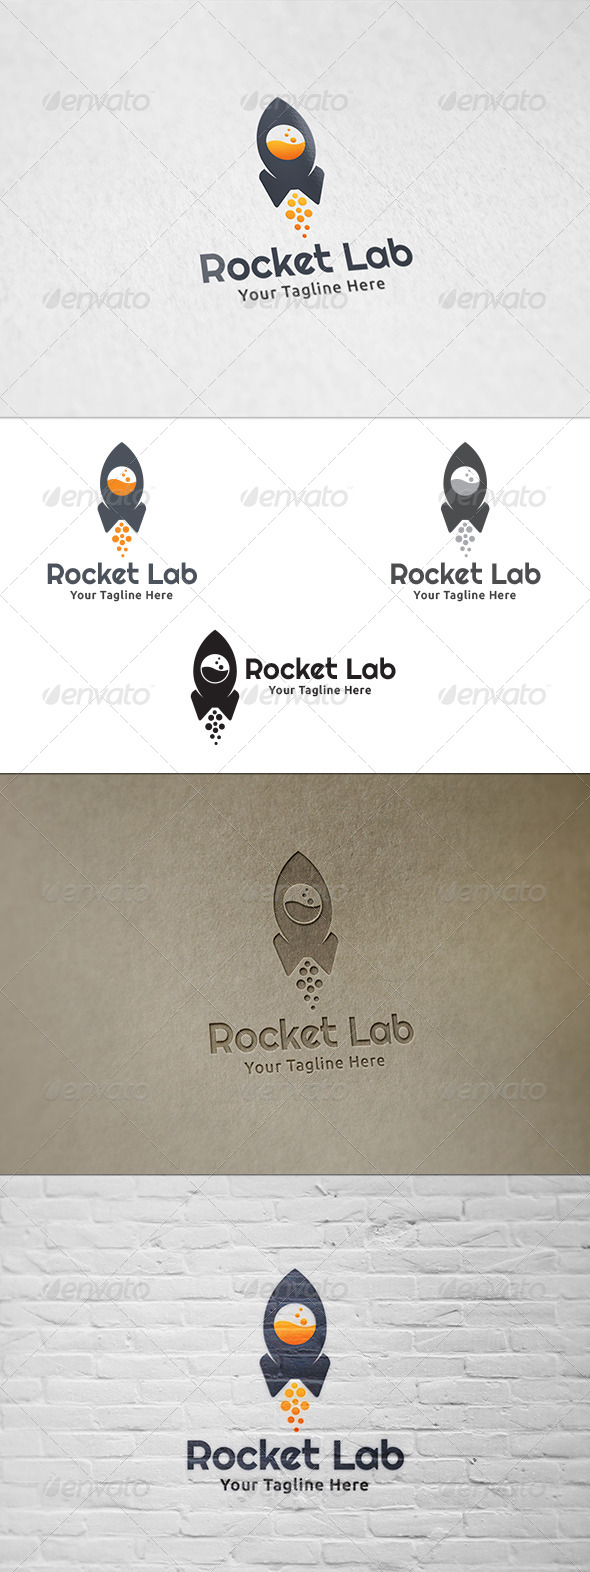 GraphicRiver Rocket Lab Logo Template 8423857